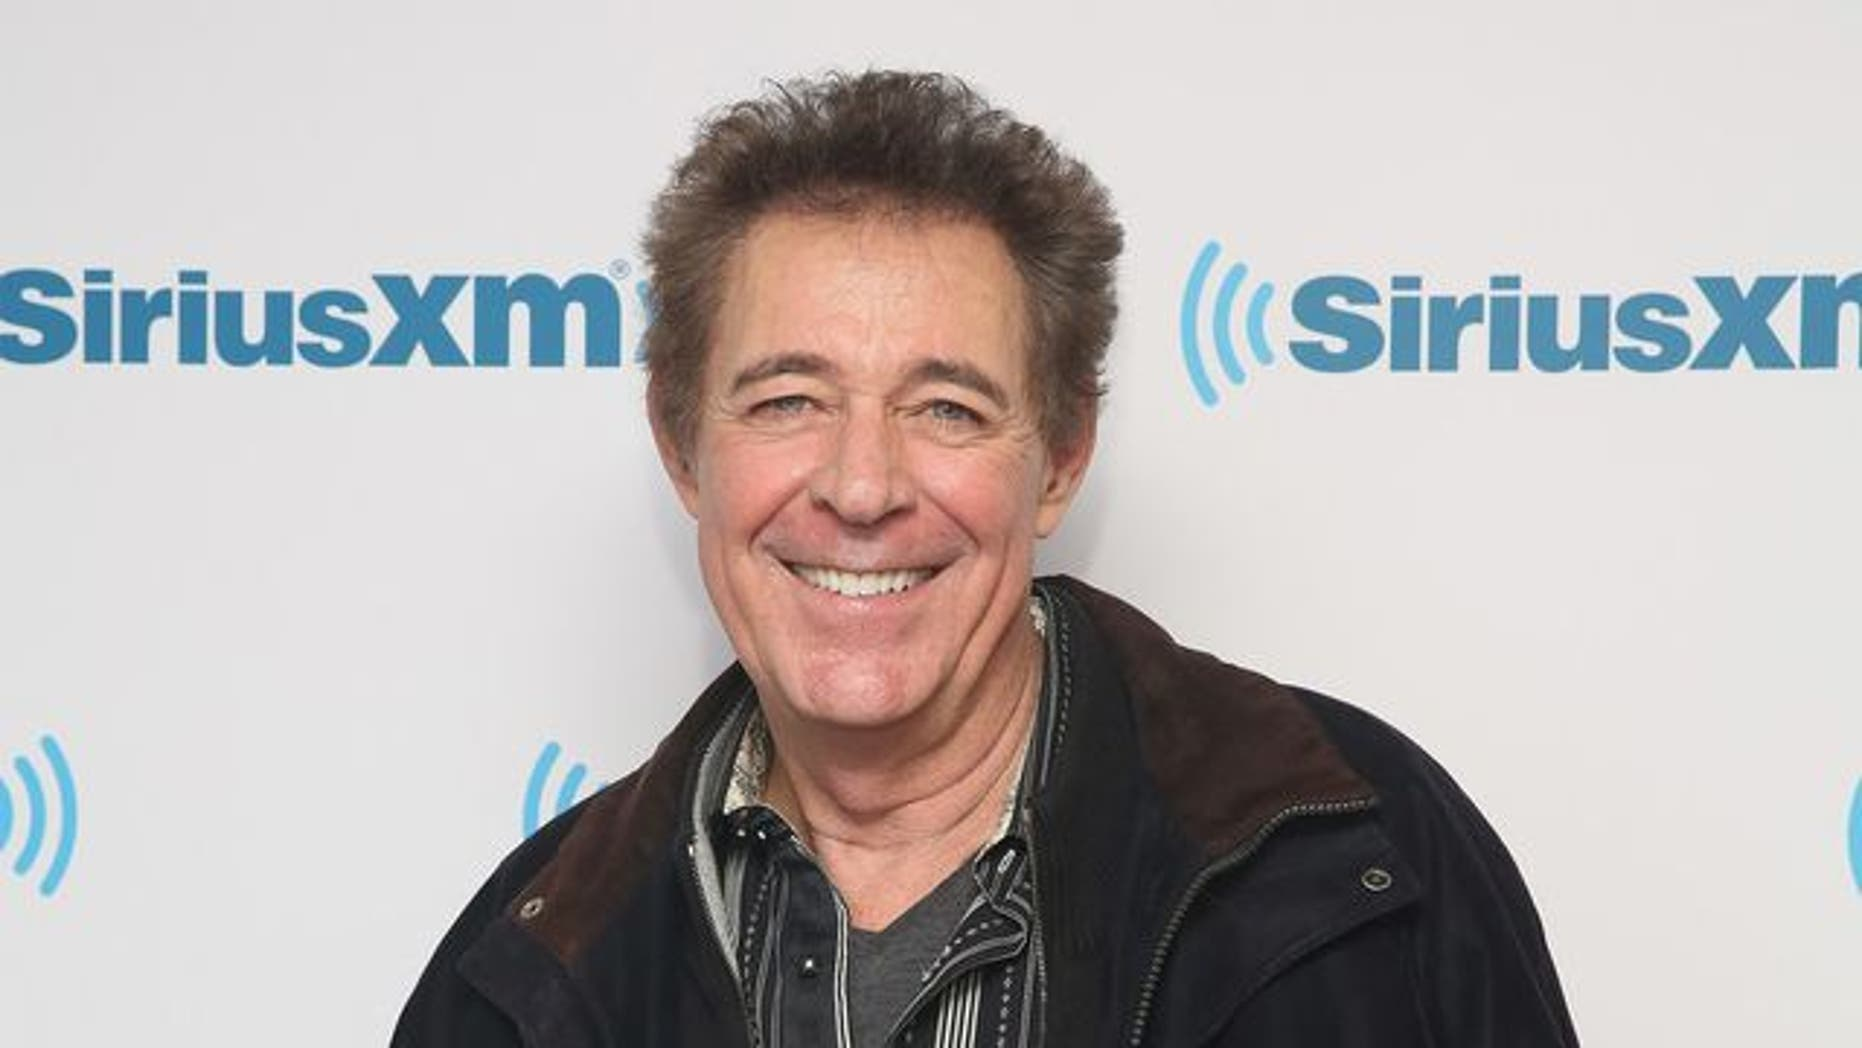 """""""brady Bunch"""" actor Barry Williams is selling his Malibu beach house."""